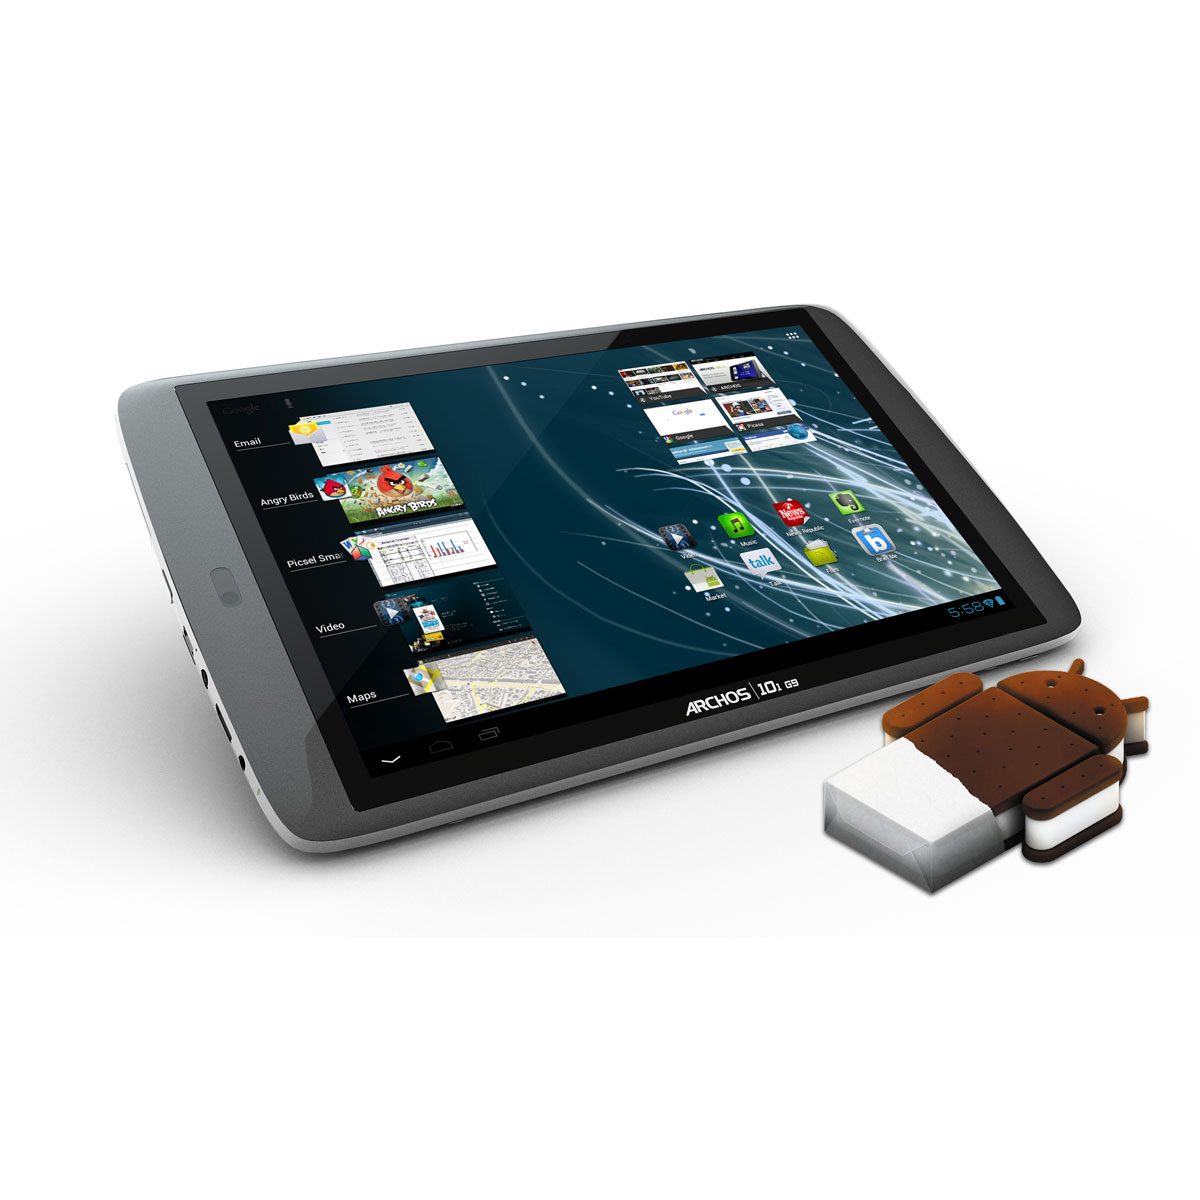 "Tablette tactile Archos 101 G9 Turbo ICS 250 Go Tablette Internet - OMAP 4 Smart multi-core 1.5 GHz 250 Go 10"" LCD tactile Wi-Fi N/Bluetooth Webcam Android 4.0"